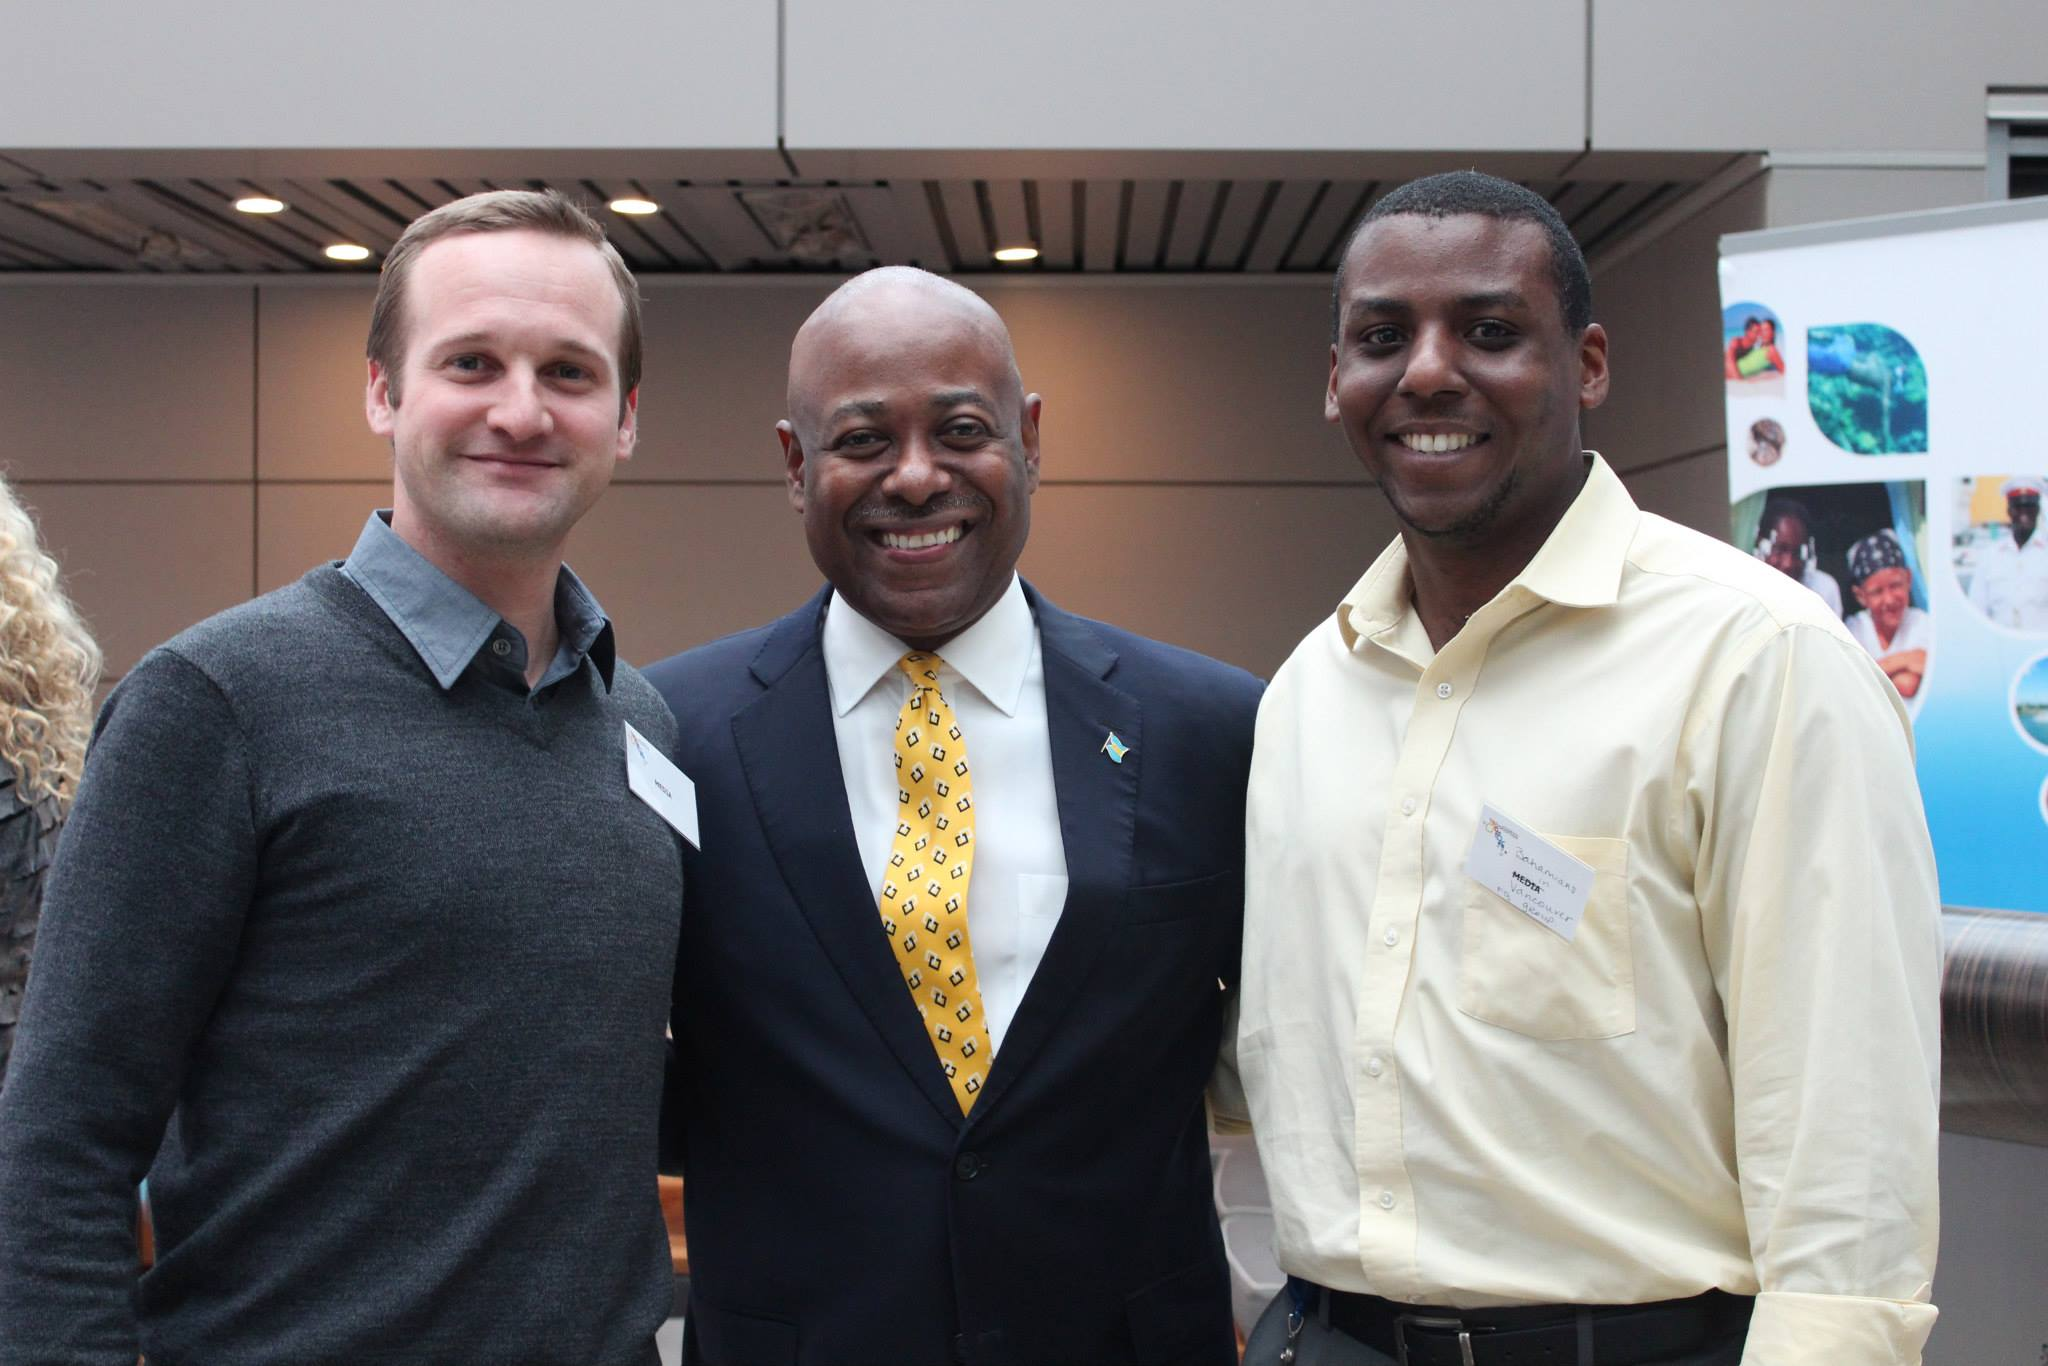 Left to right: Chris Lowe, Minister of Tourism, Bahamas, the Hon. Obie Wilchcombe; and Gareth Hanna. Lowe and Hanna started the Bahamians in Vancouver Facebook group page.